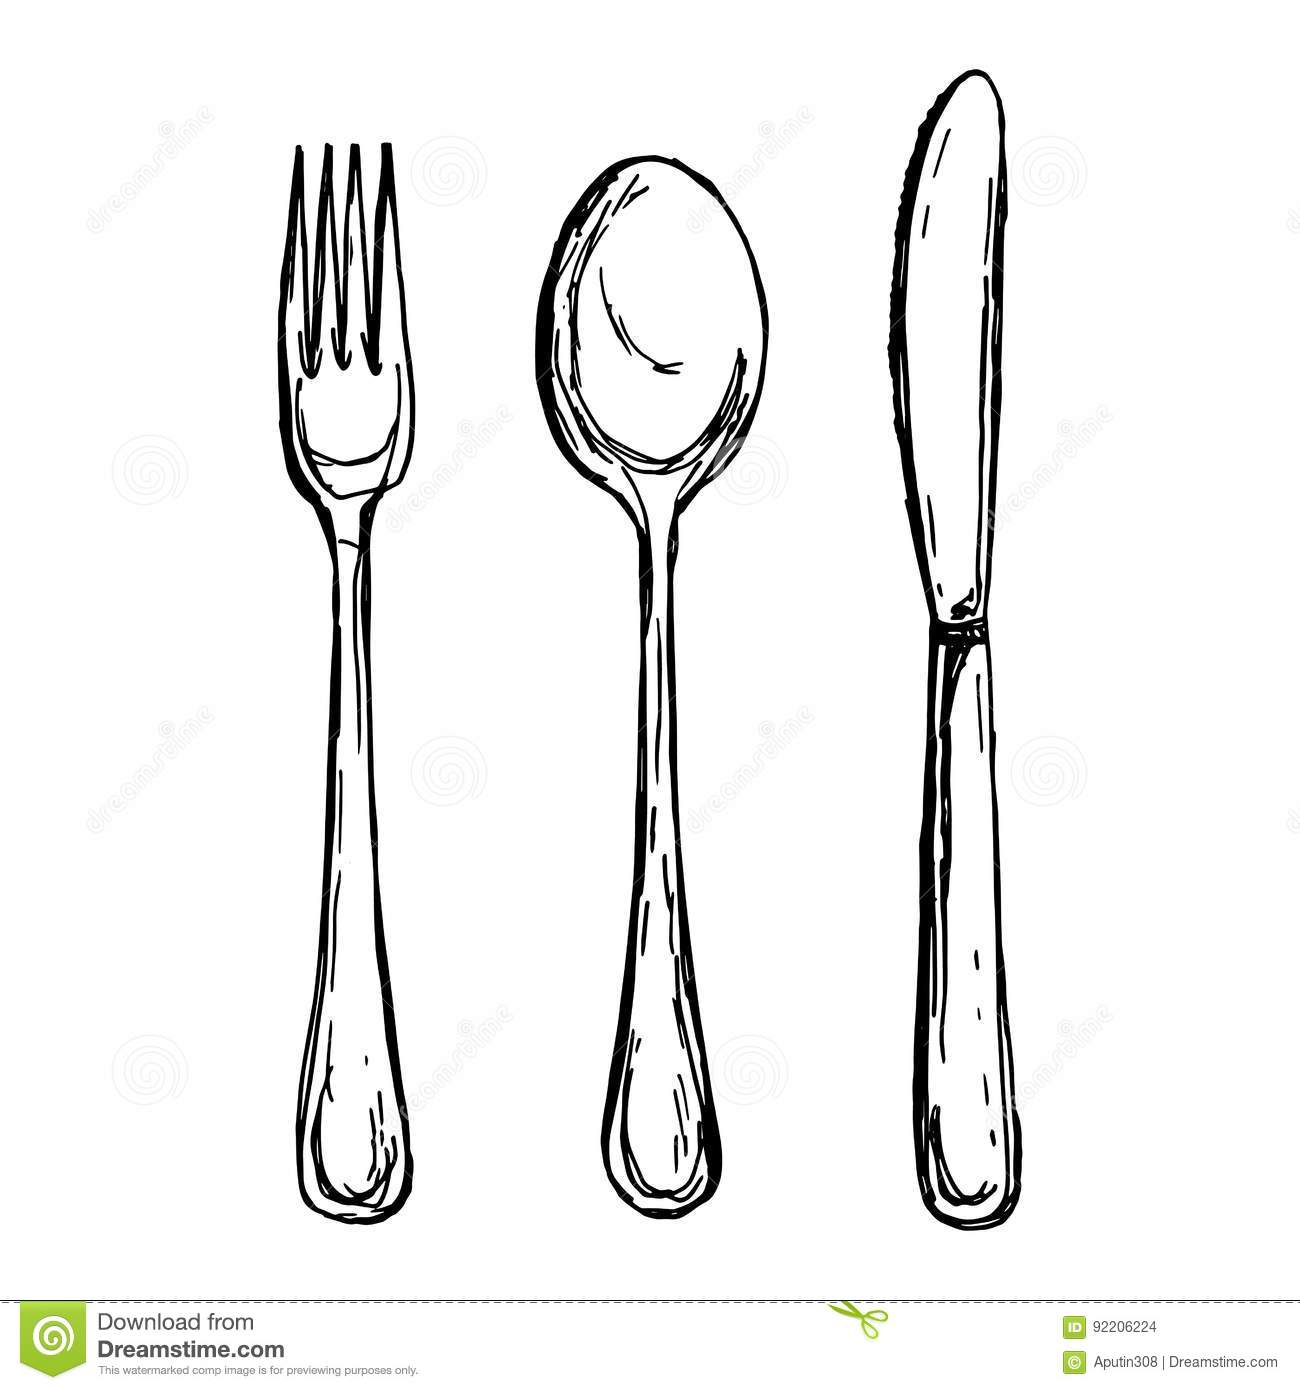 Vector Illustration Of Vintage Spoon Fork And Knife